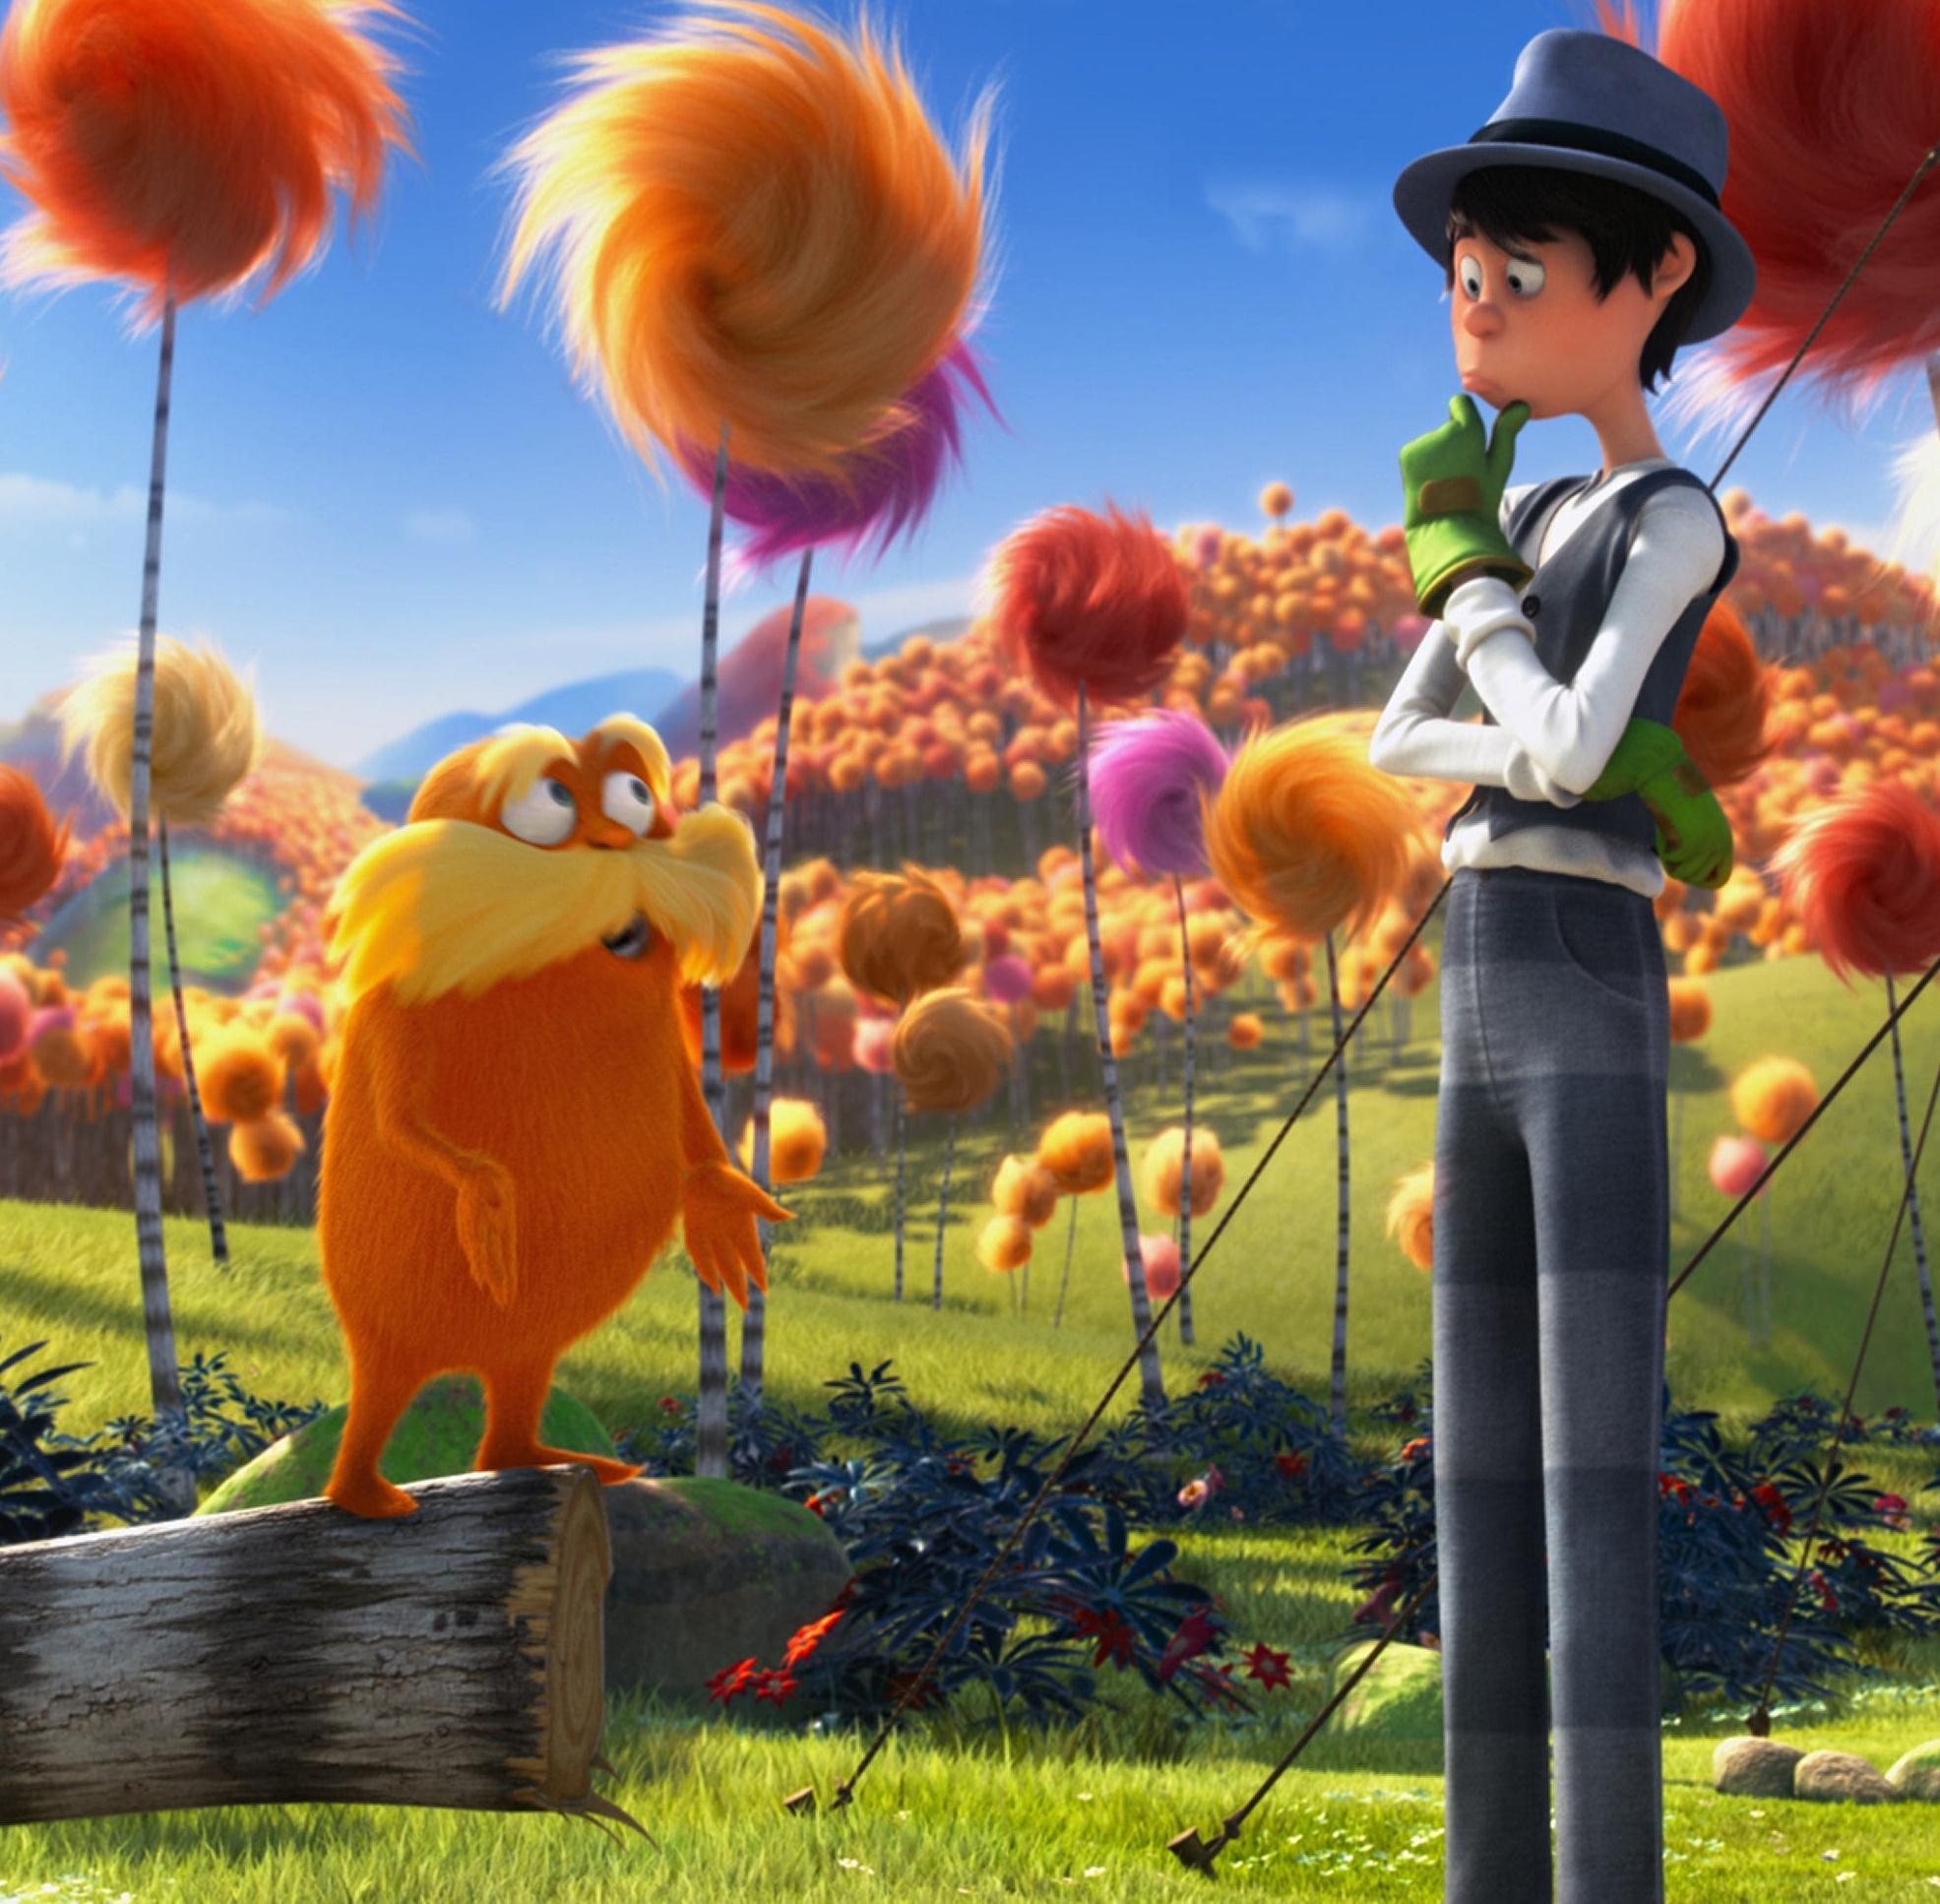 ap-film-review-the-lorax-18076209jpg (1971×1934)